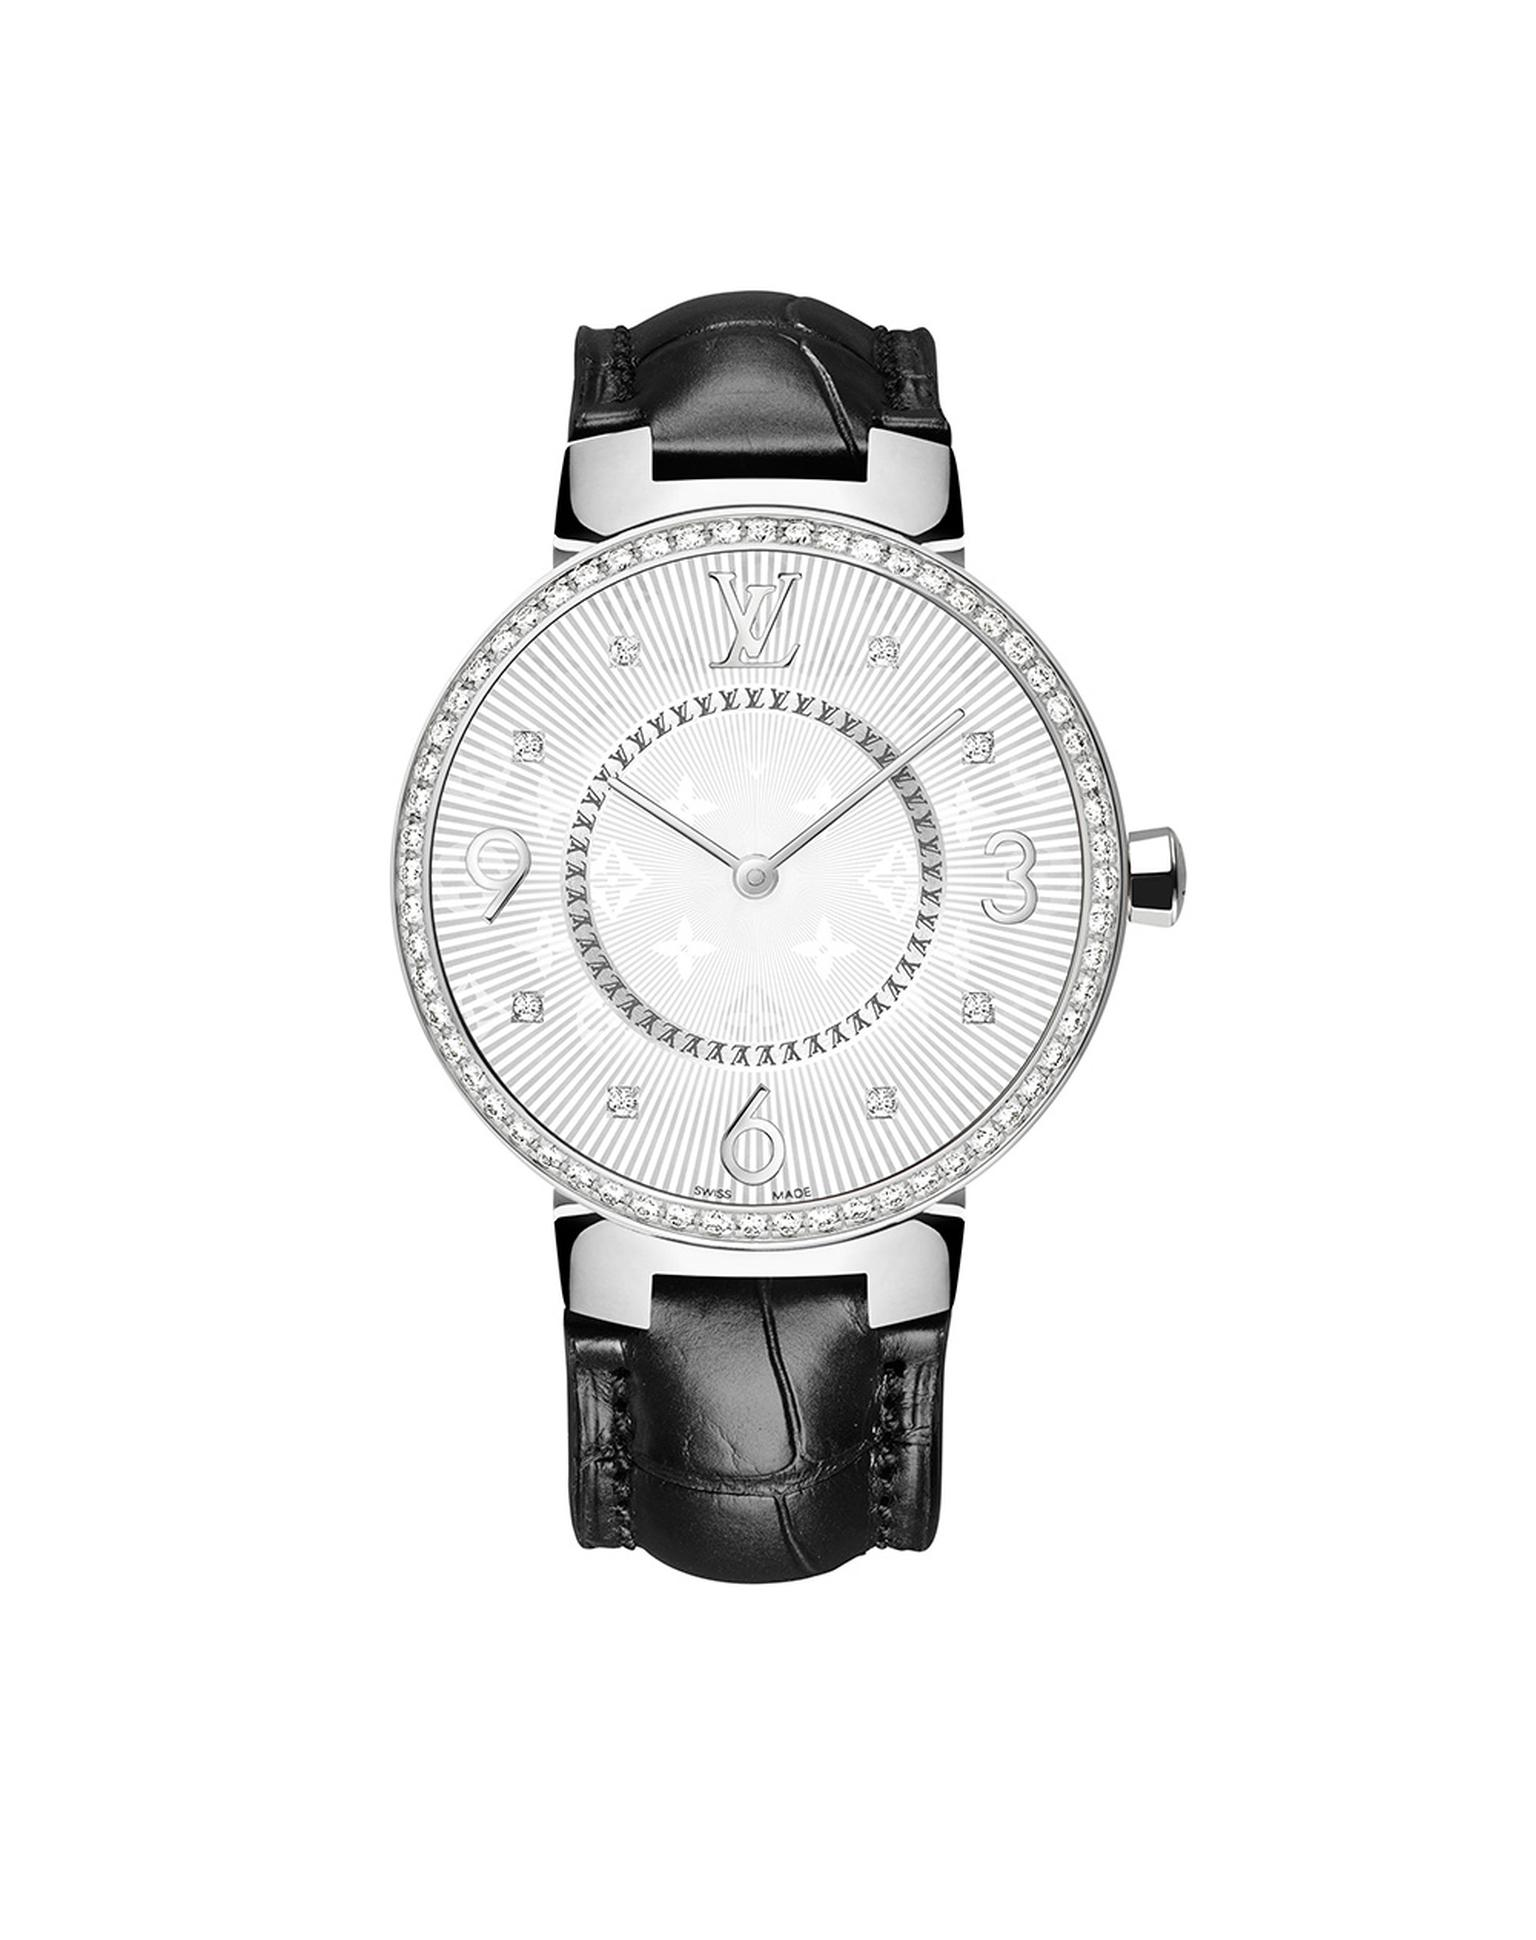 Louis Vuitton Tambour Monogram Acier Serti 33mm watch with a steel case, diamond-set bezel with a quartz movement on a black alligator strap. © LOUIS VUITTON. Auteur: I REEL.